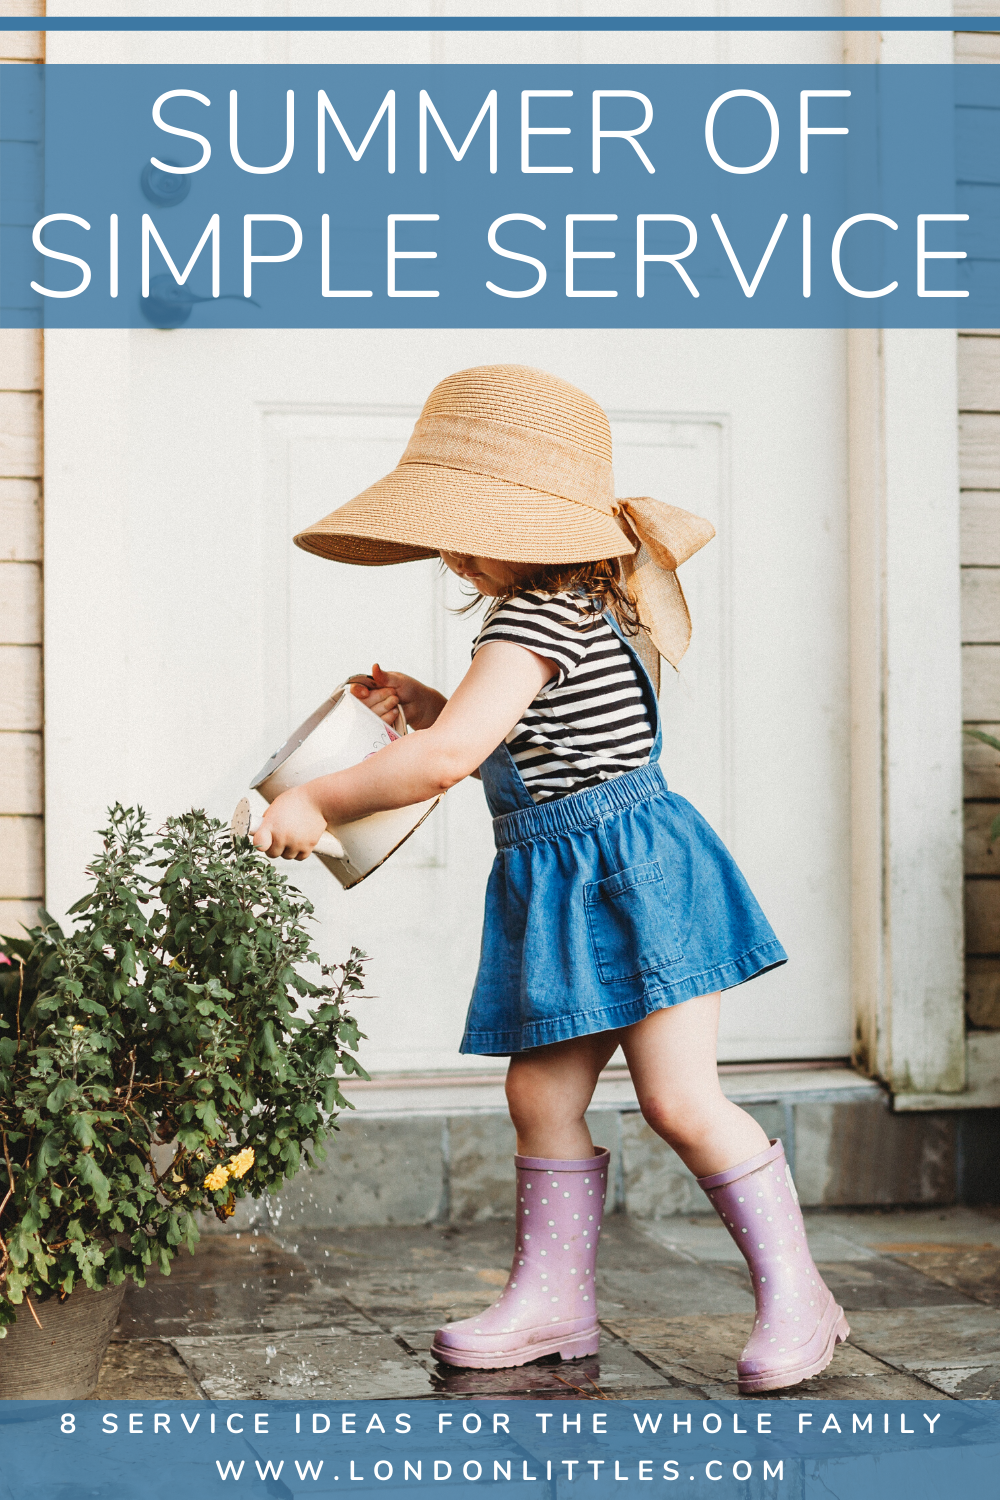 simple service activities for the whole family